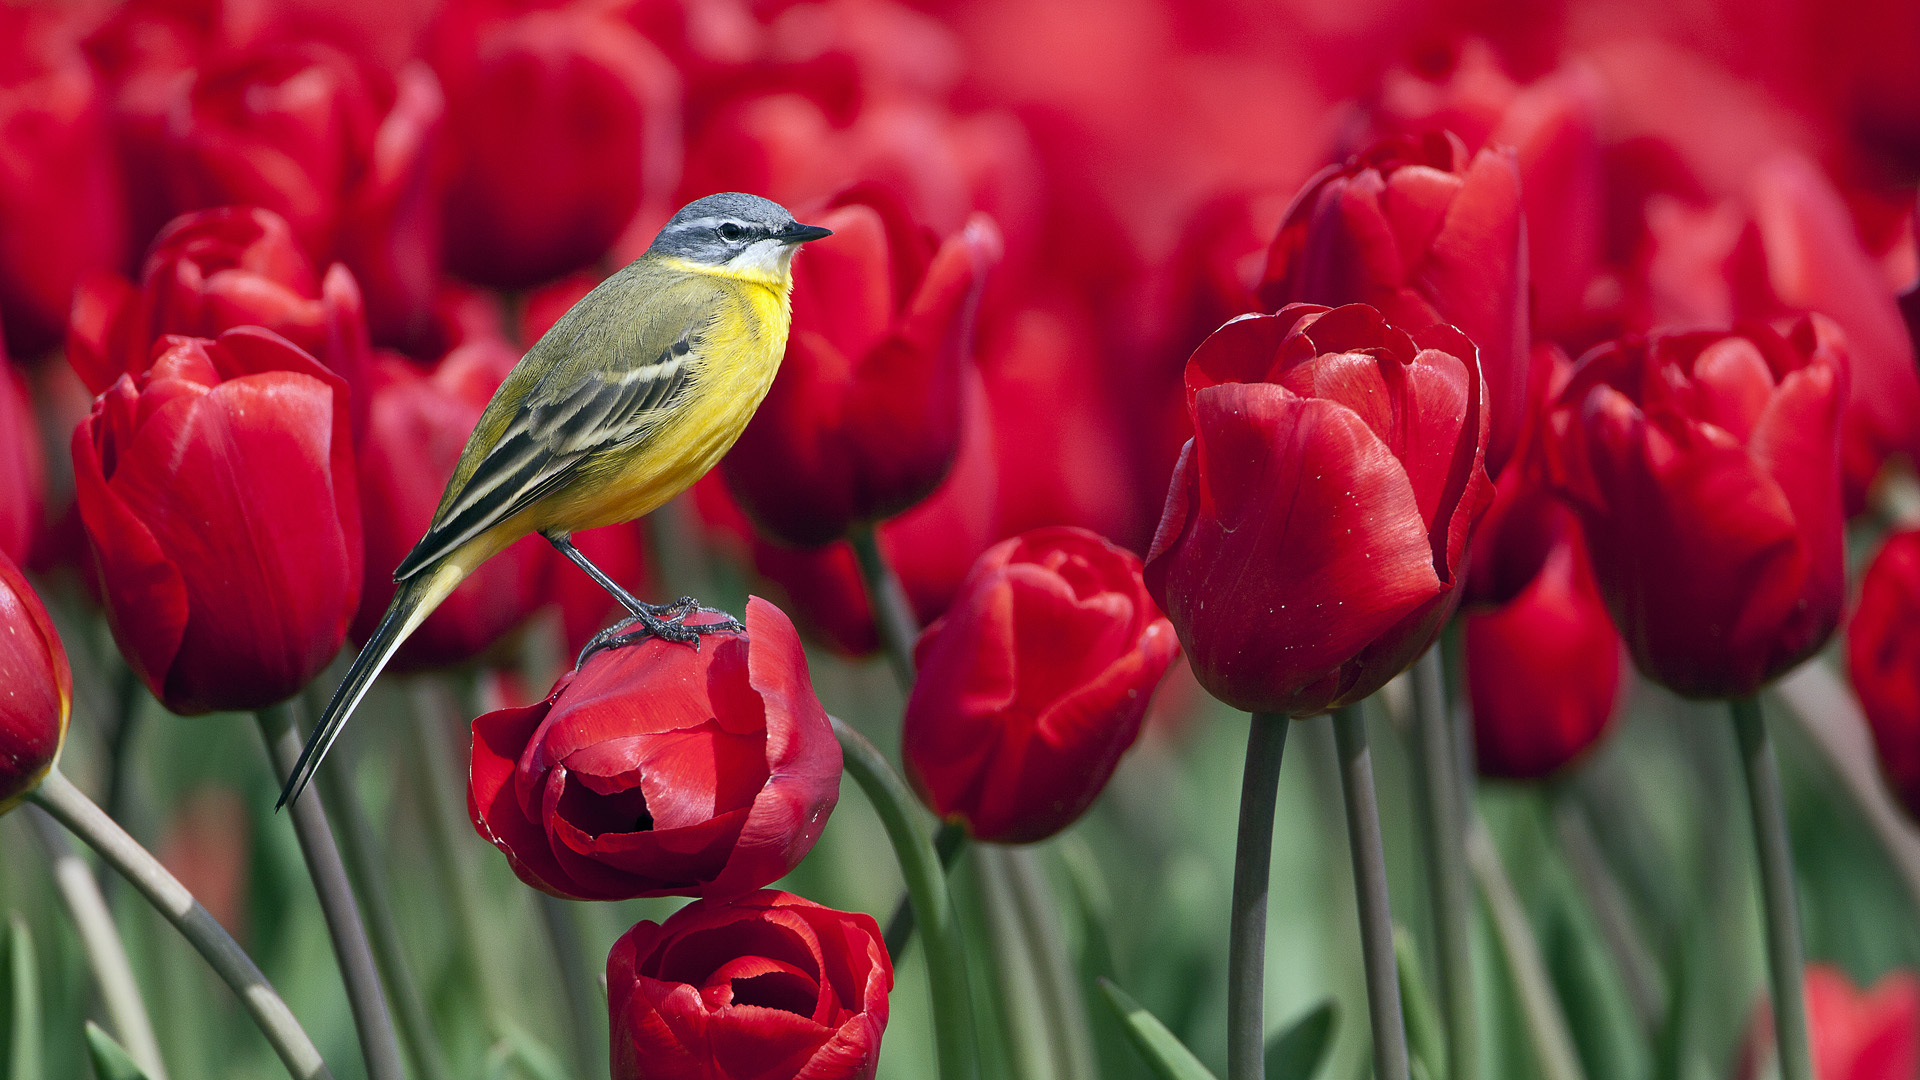 wallpaper of birds and flowers which is under the birds wallpapers 1920x1080